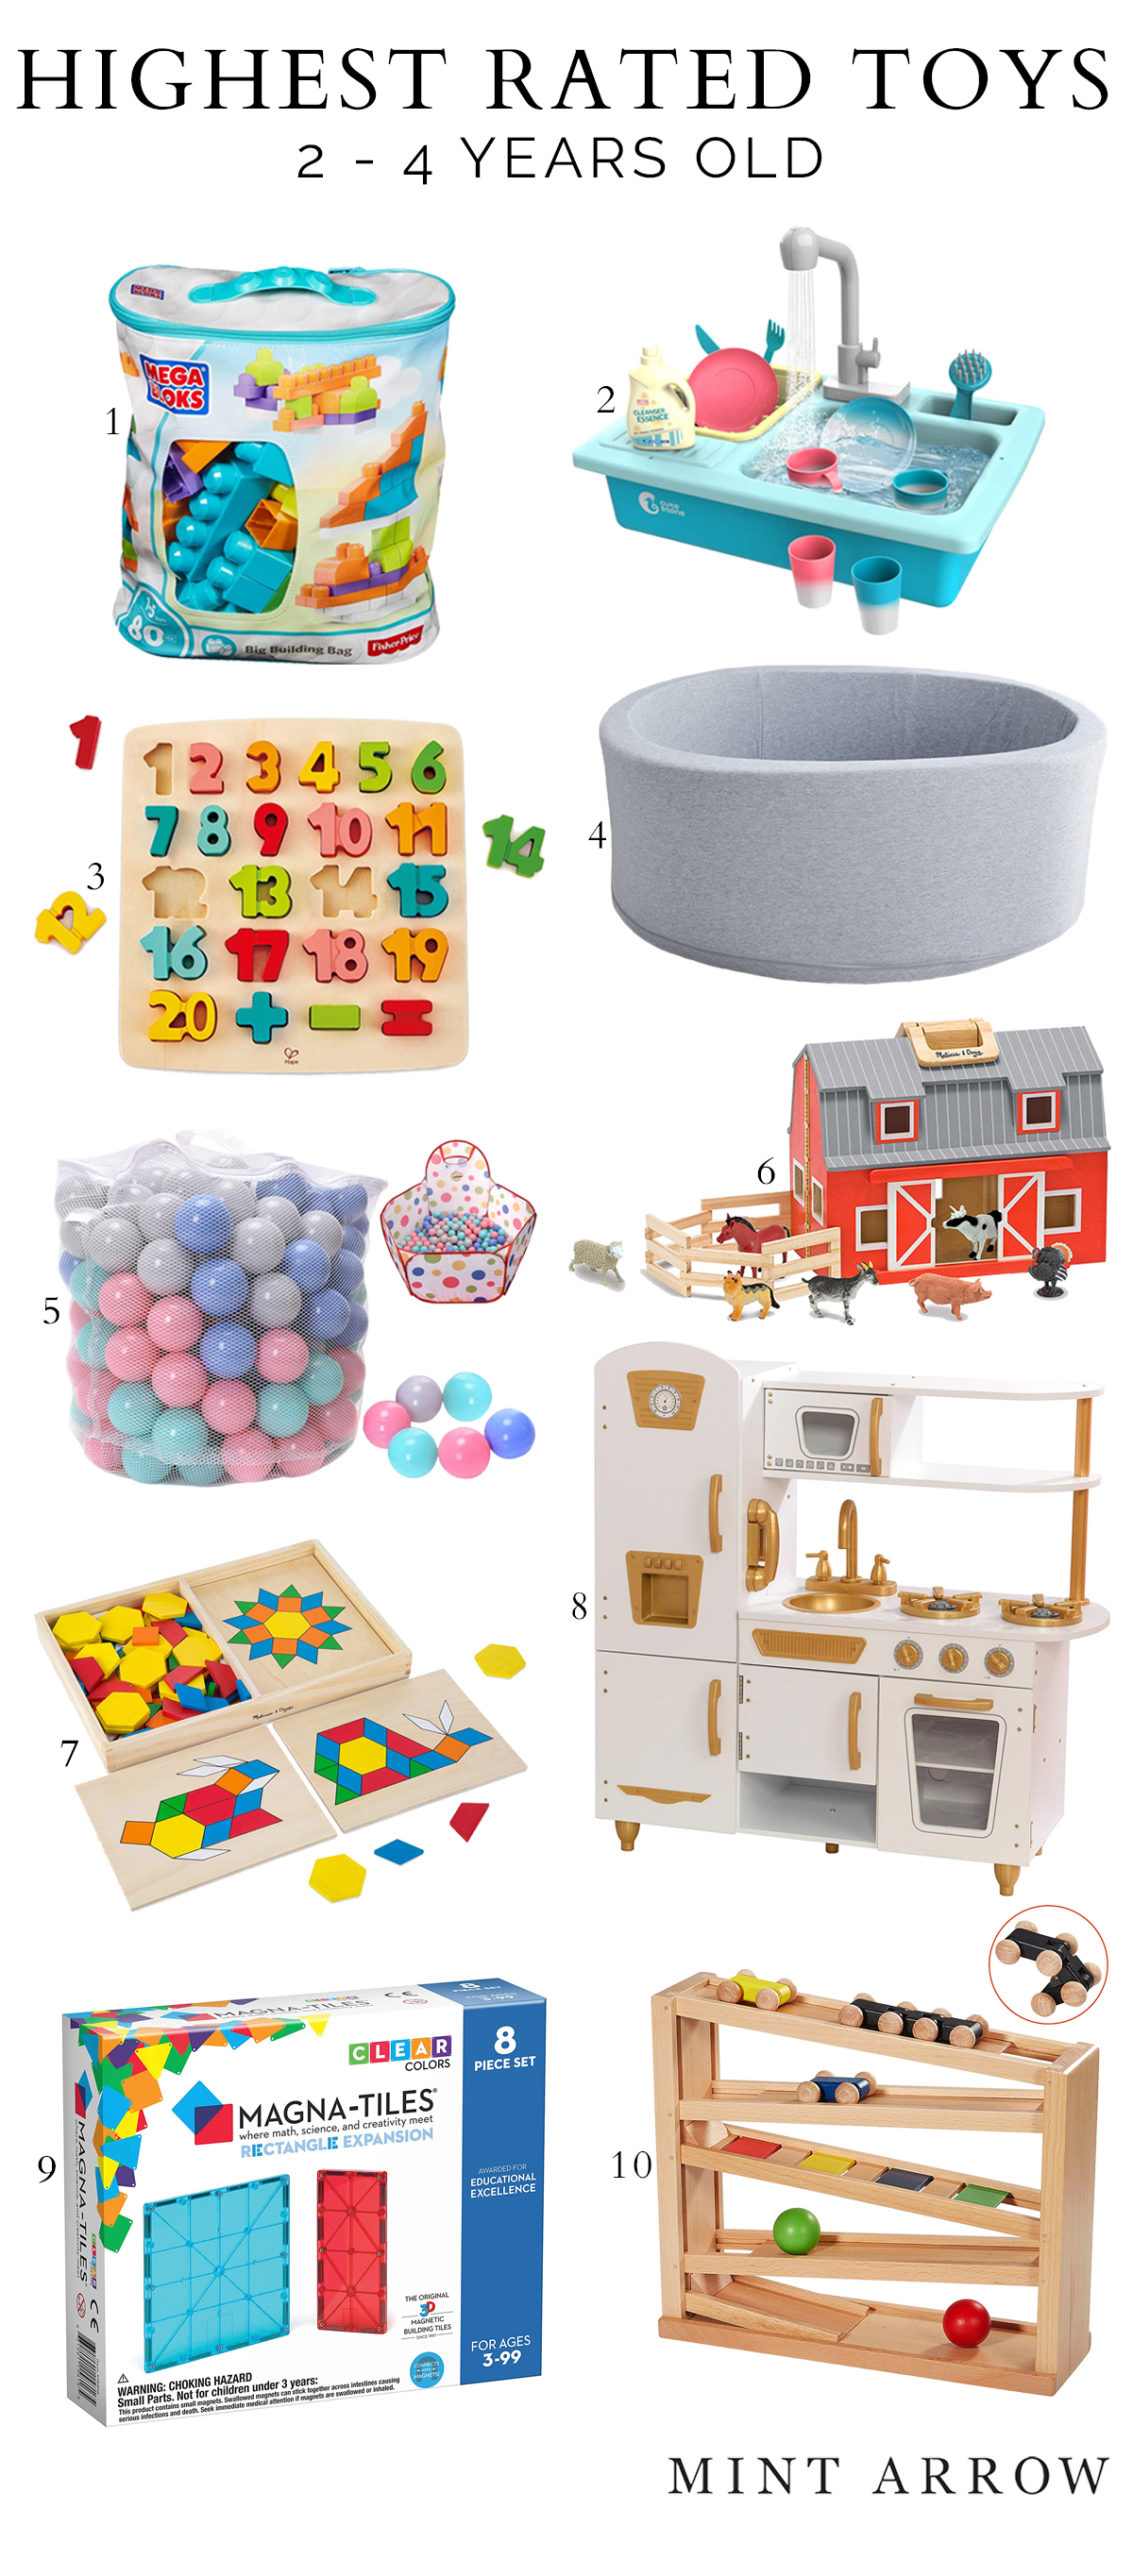 kid gift guide christmas gift ideas for 2-4 year olds